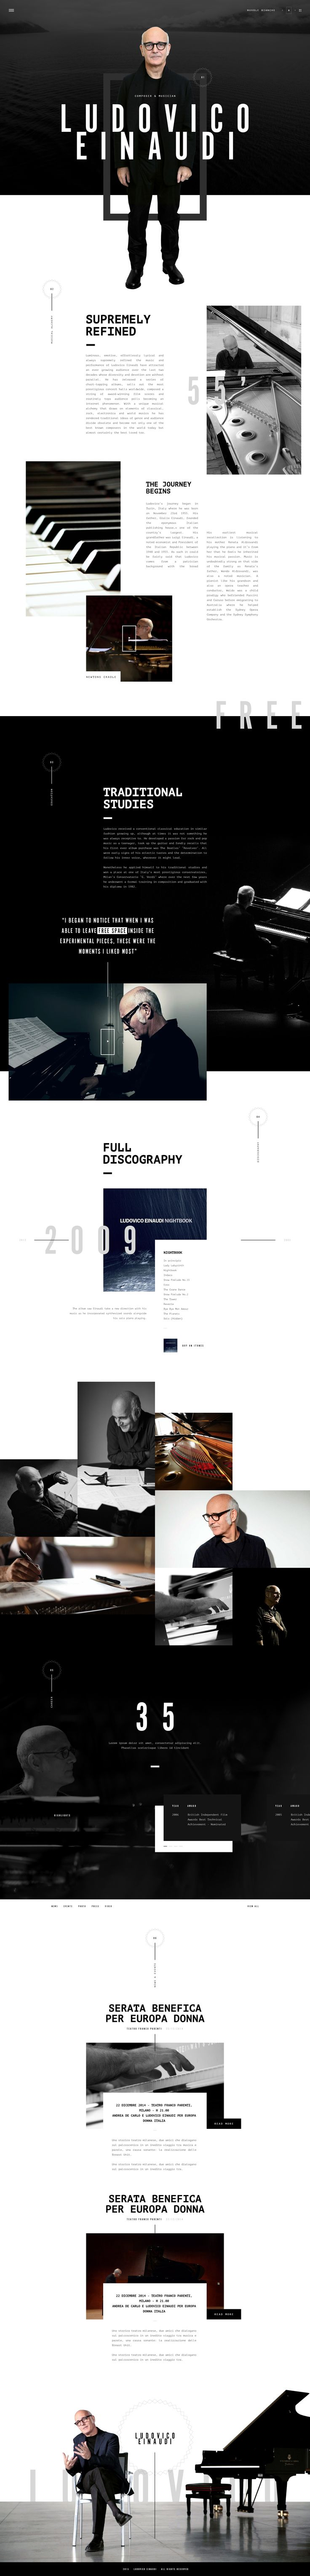 Ludovico Einaudi web presence conceptual design. Ui work by Gene Ross on dribbble.